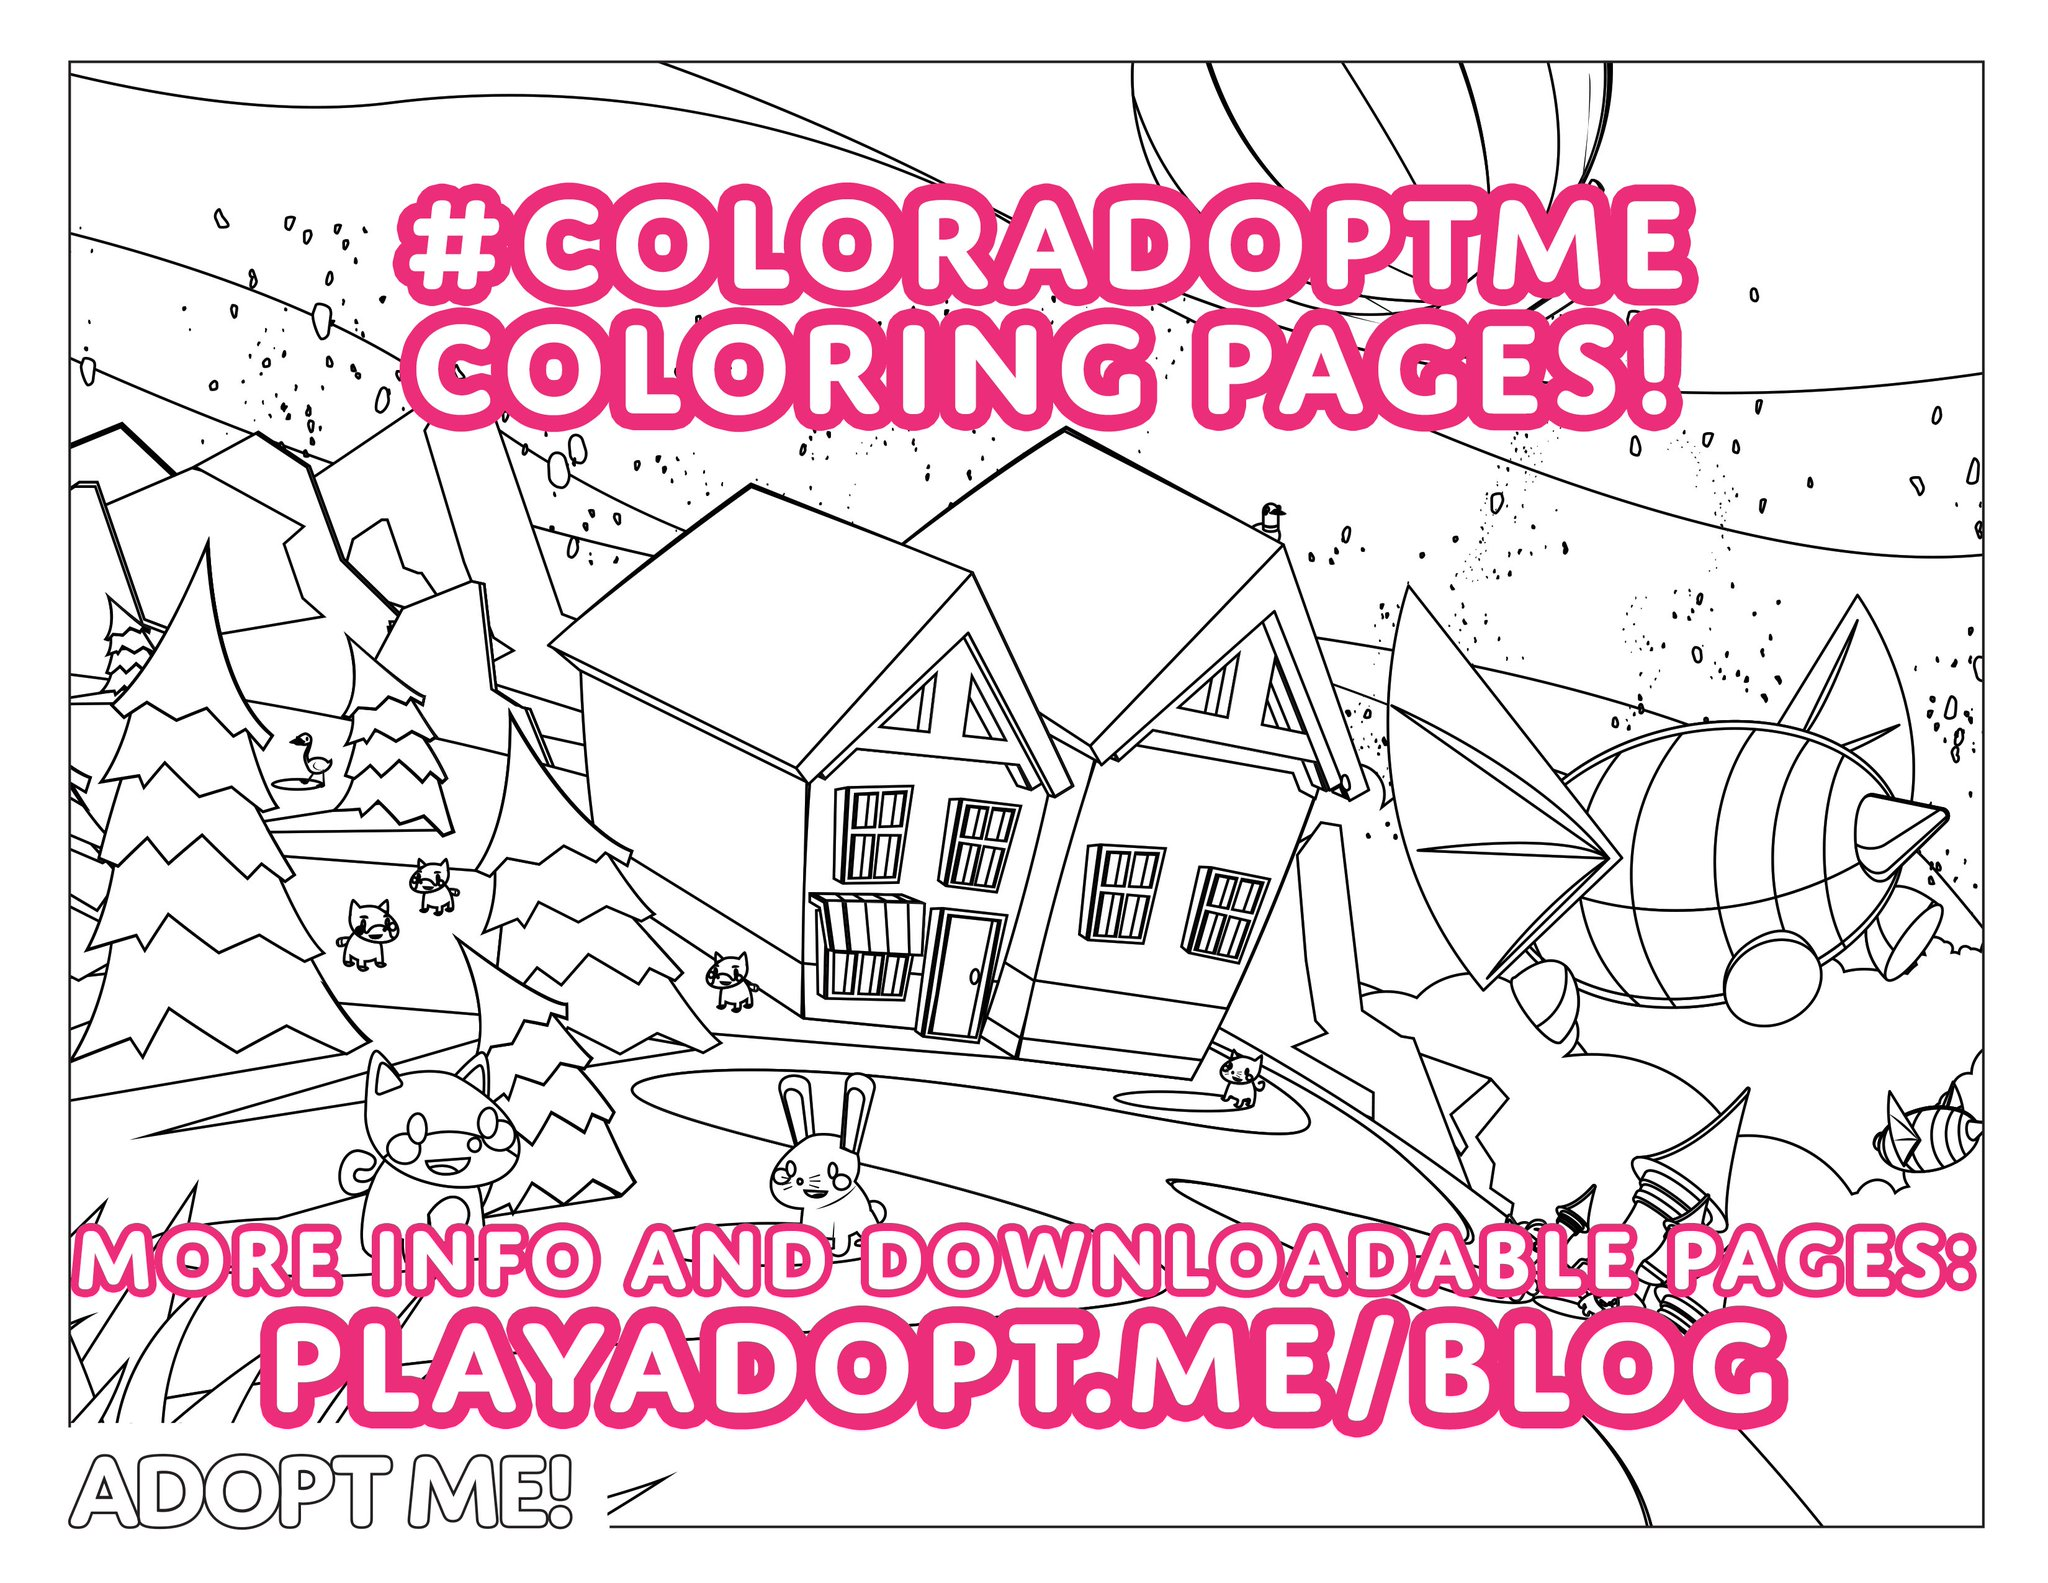 Adopt Me On Twitter Another Coloring Page Is Up On Our Blog Now Coloradoptme More Information About The Challenge And Downloadable Pages Https T Co Yr8ekgs8bn Https T Co Vbs16adg6x